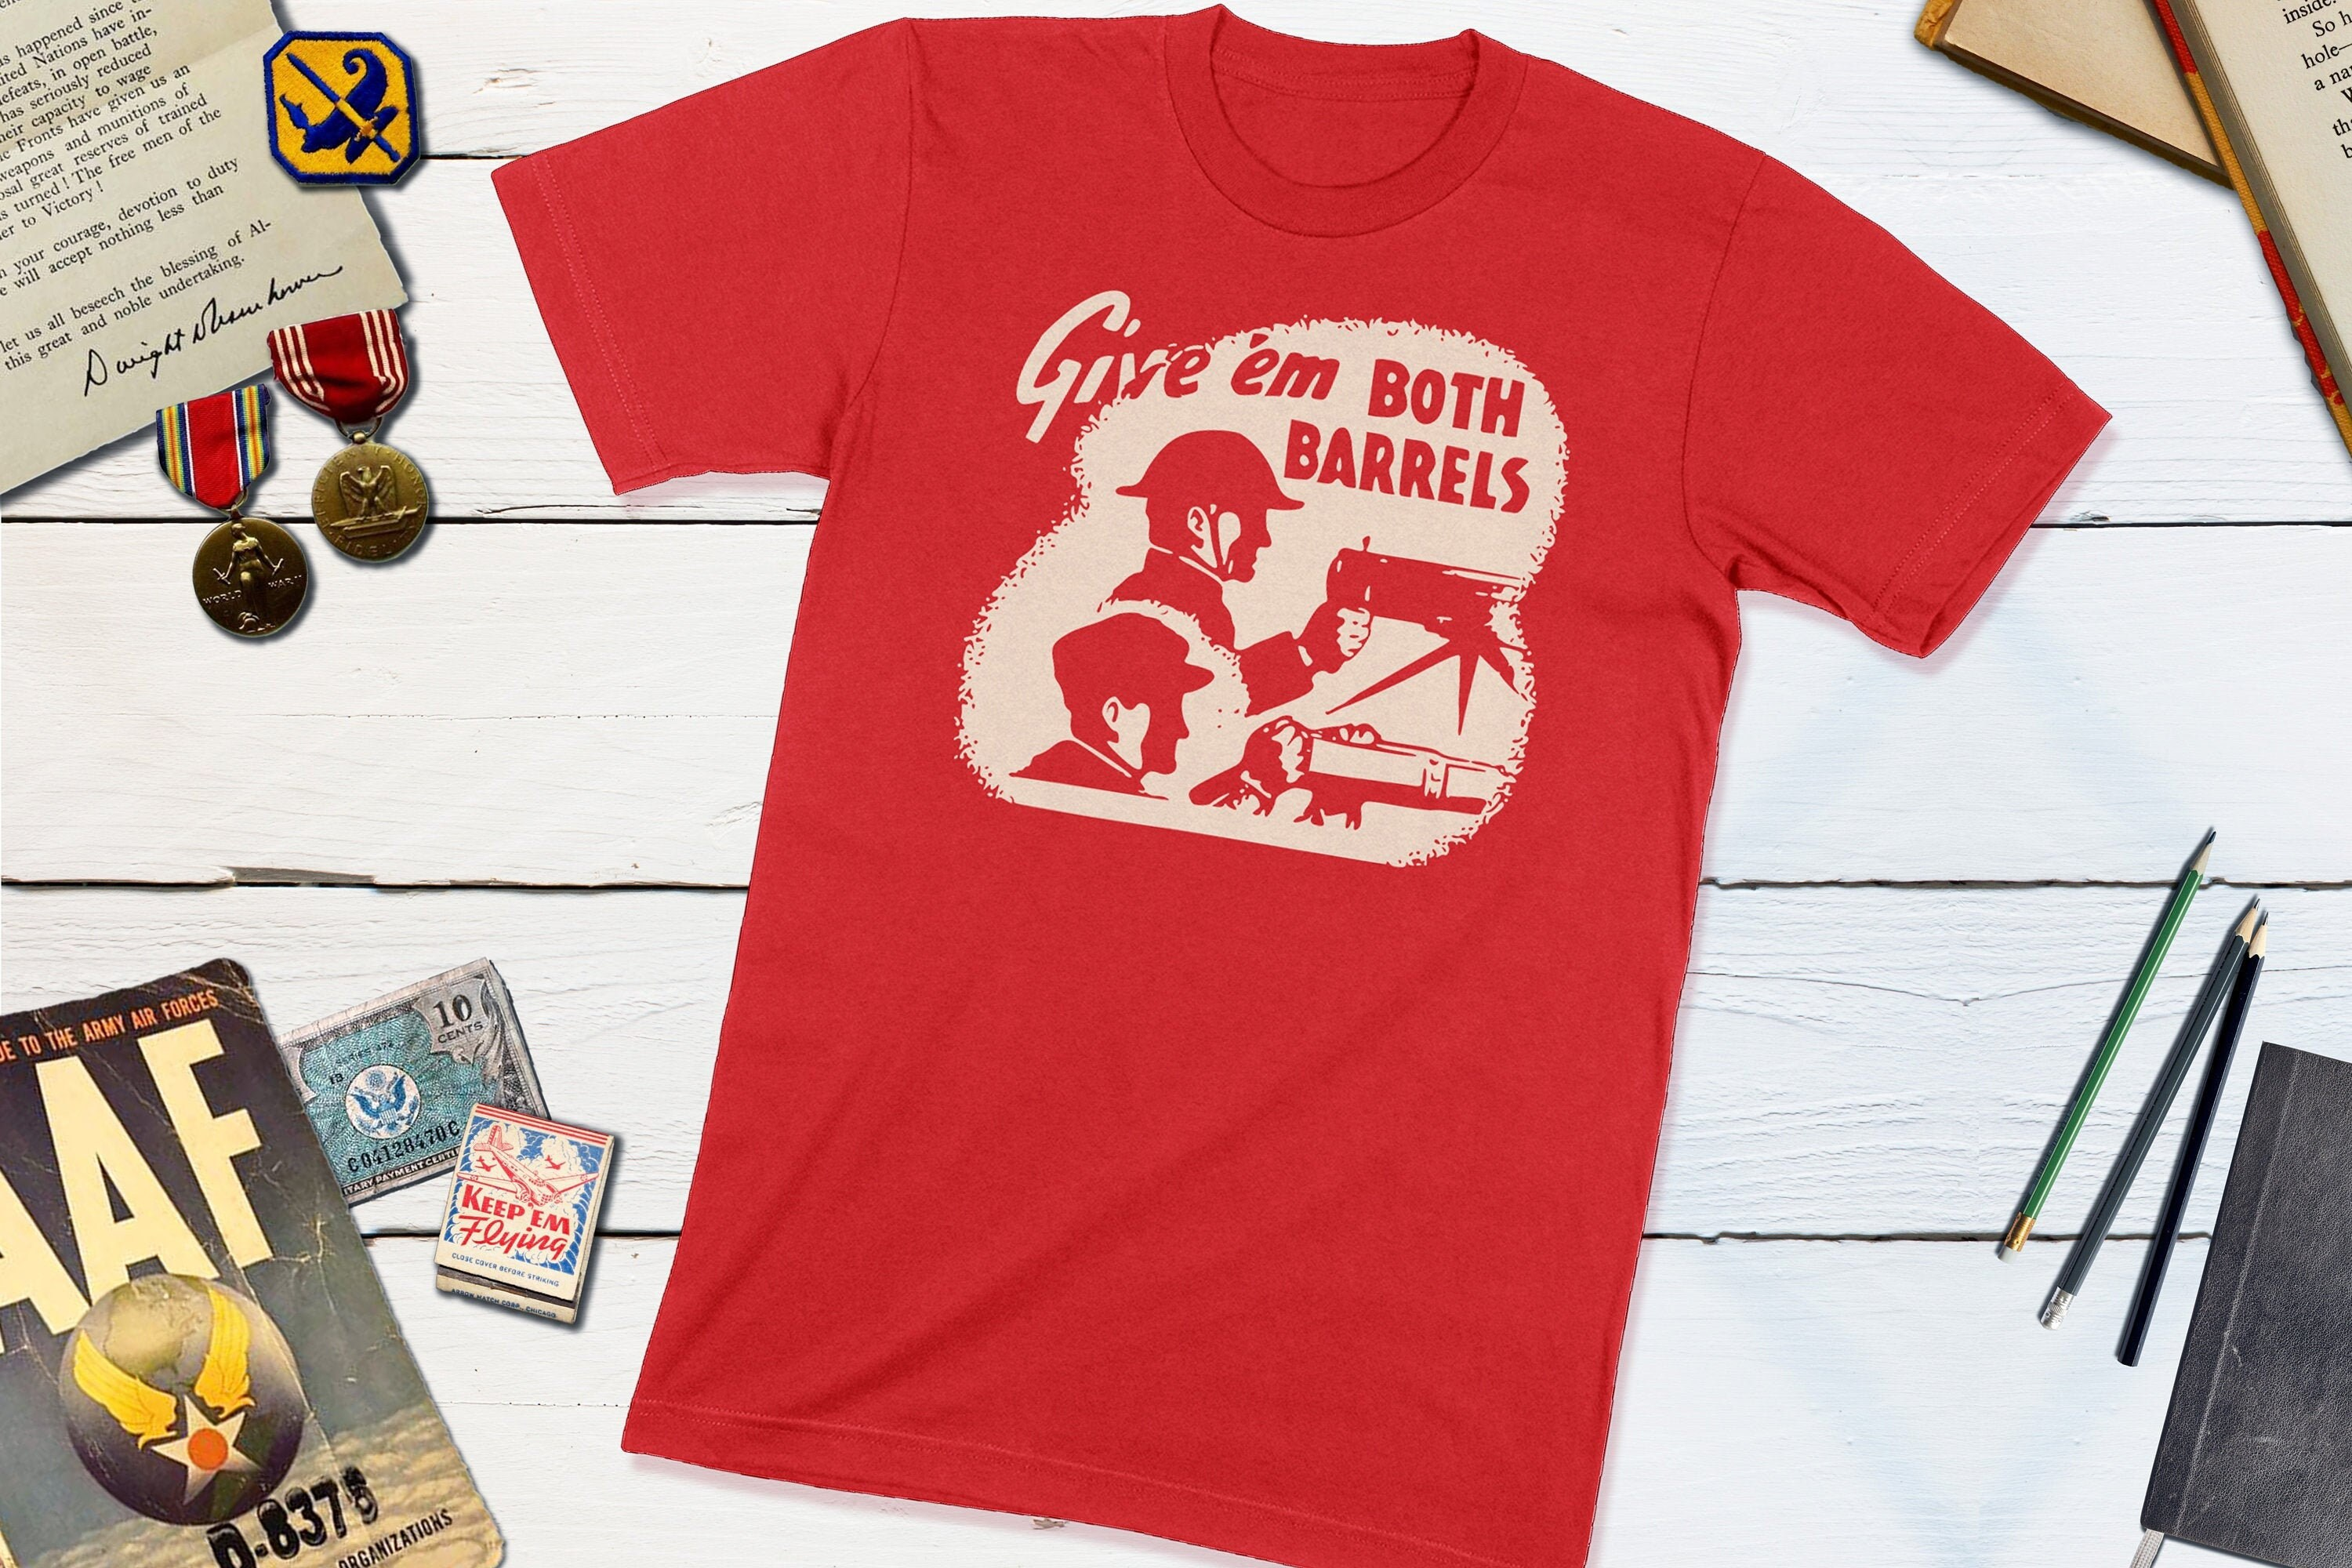 1940s Jewelry Styles and History Wwii Us History World War Ii Poster Giveem Both Barrels Wwii Vintage Matchbook Shirt Wwii Patriotic Gift For Him $24.00 AT vintagedancer.com